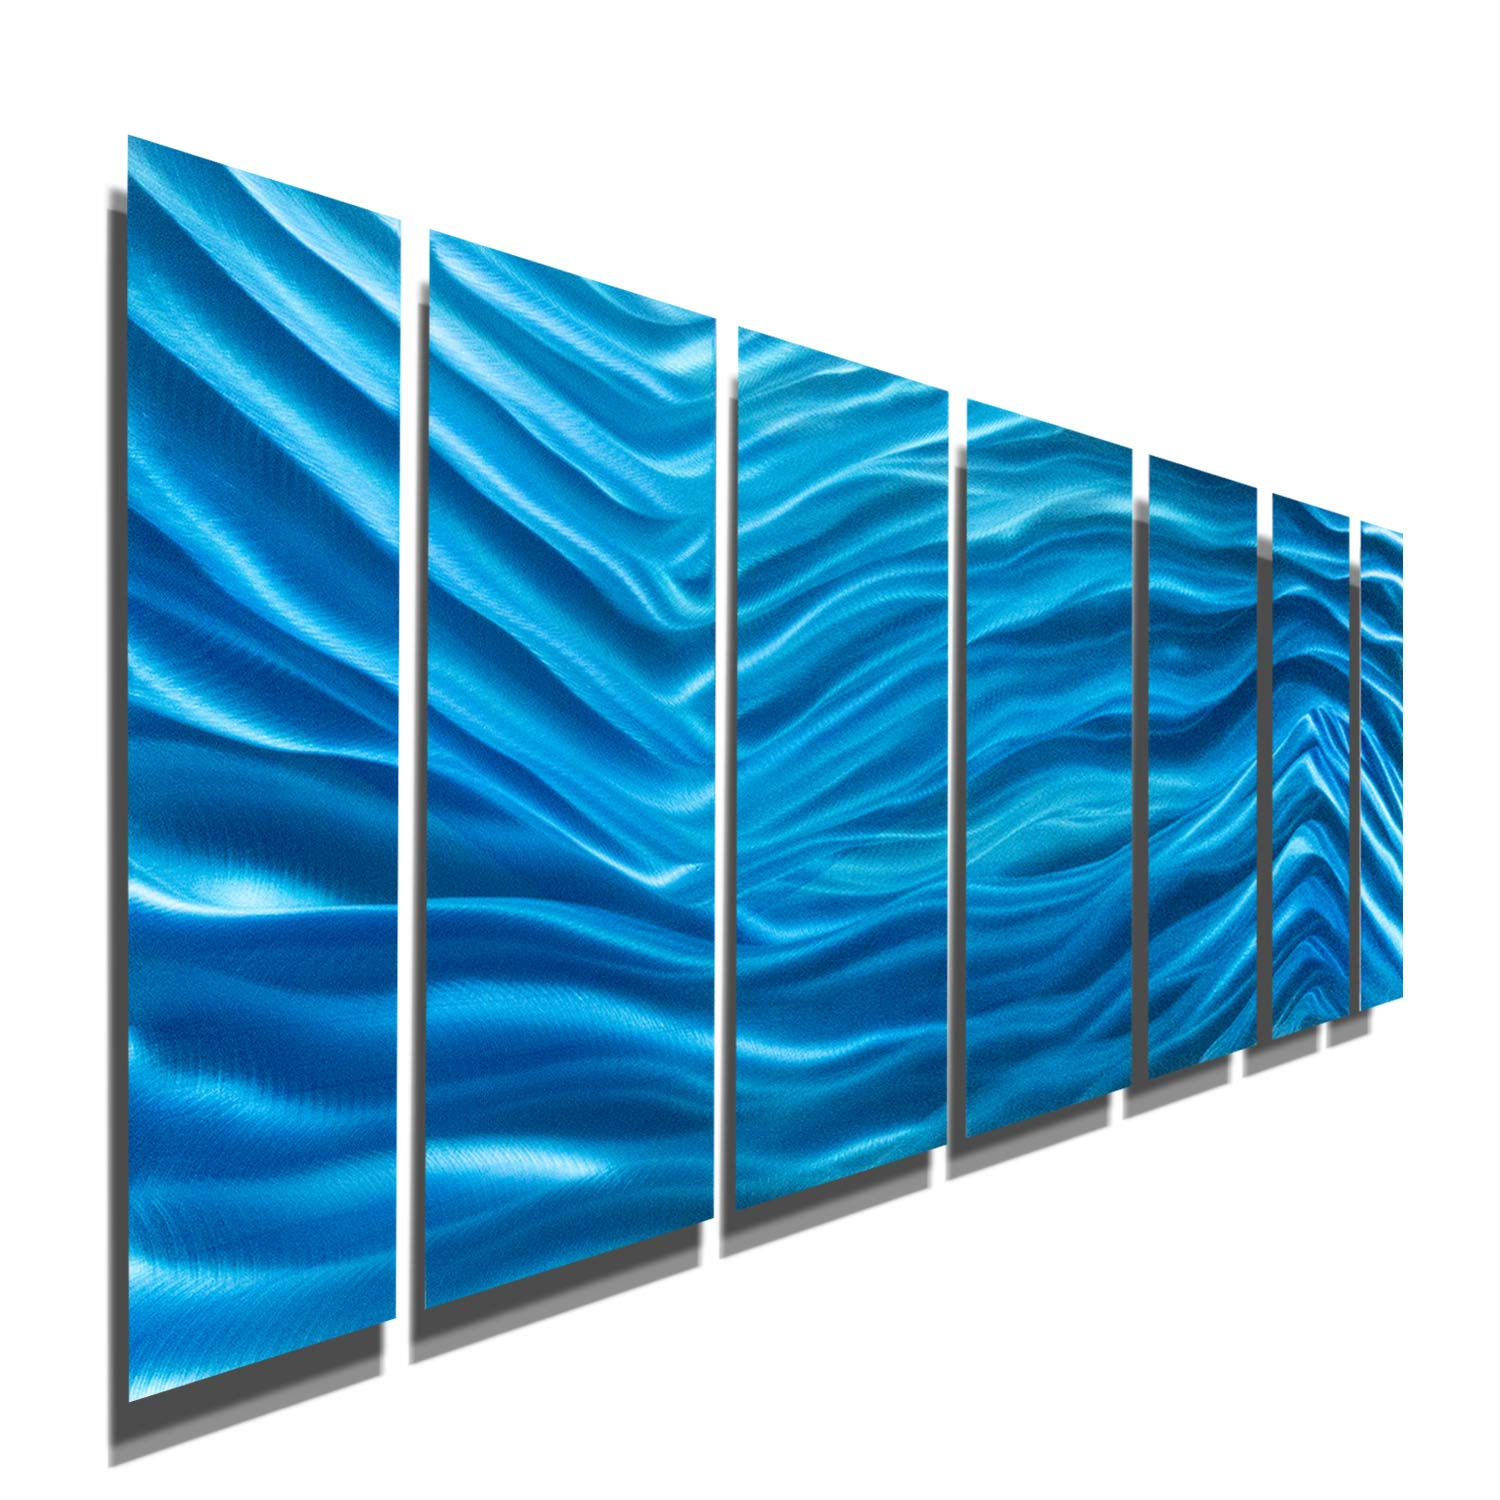 Amazon com bold blue aqua abstract modern metal wall art hand painted home decor home accent aqua blue wave ii by jon allen home kitchen